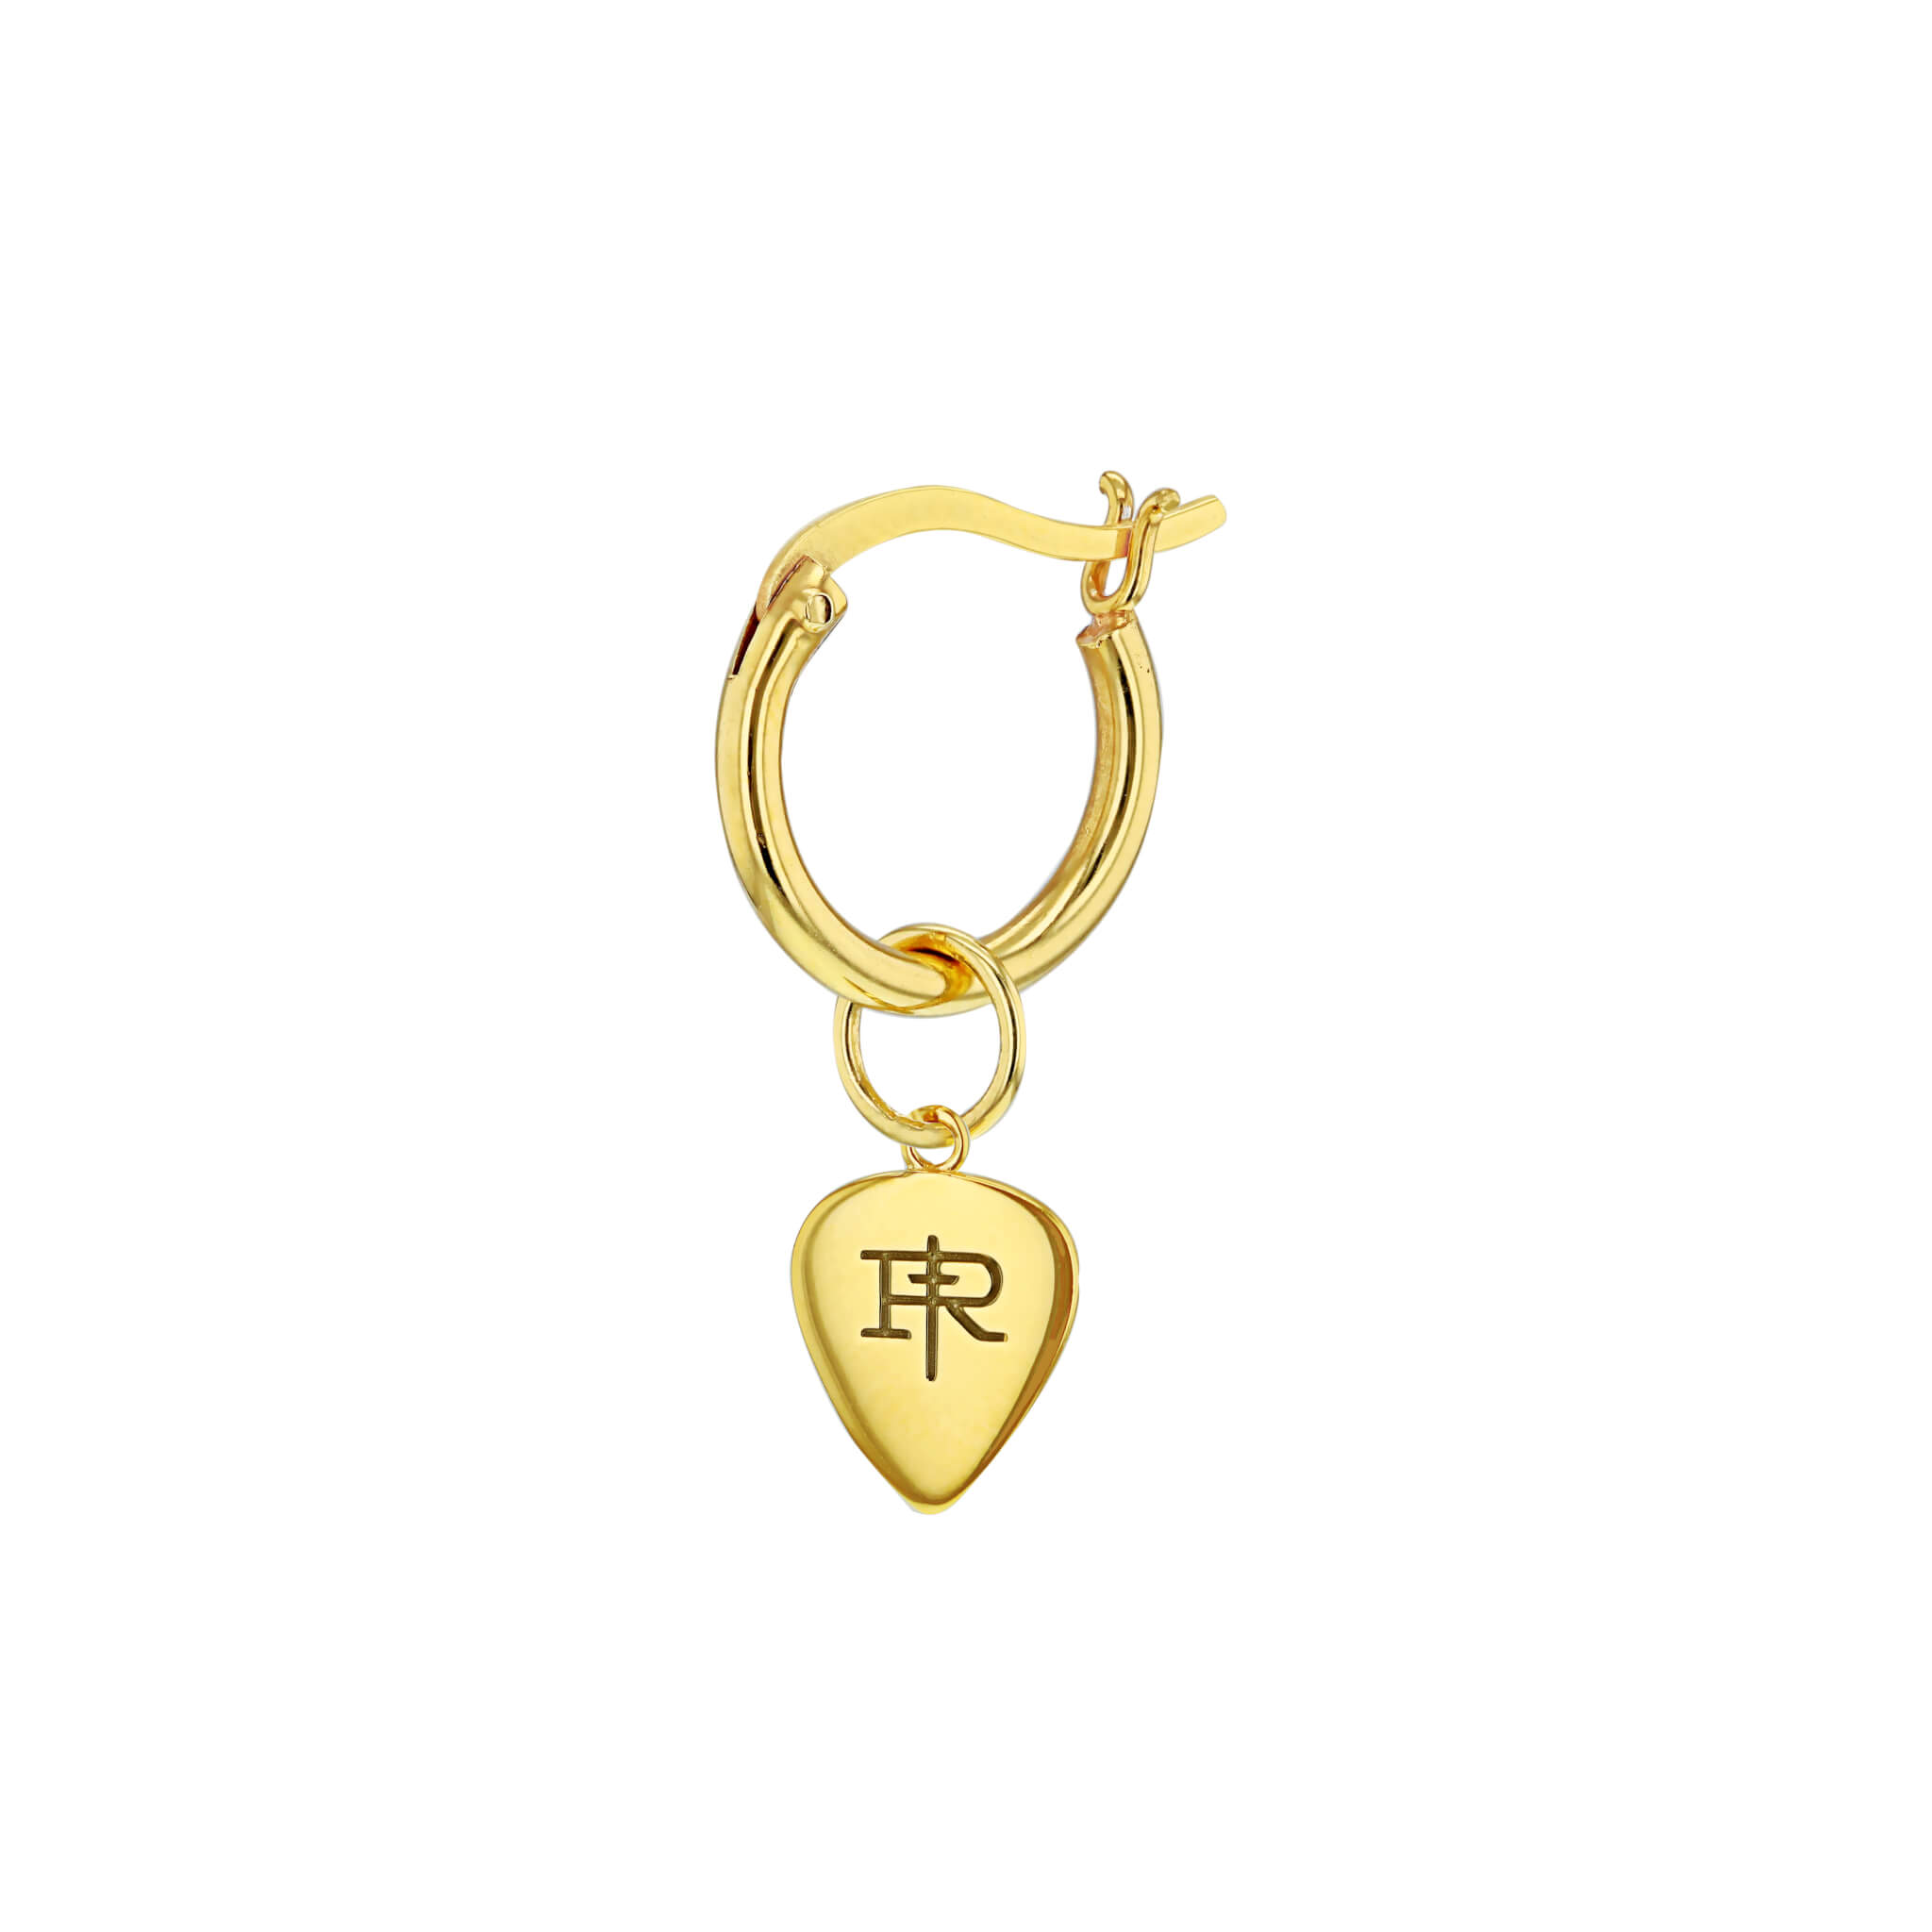 18kt Gold Plated Mini Plectrum Charm on Gold Plated Hoop Earring